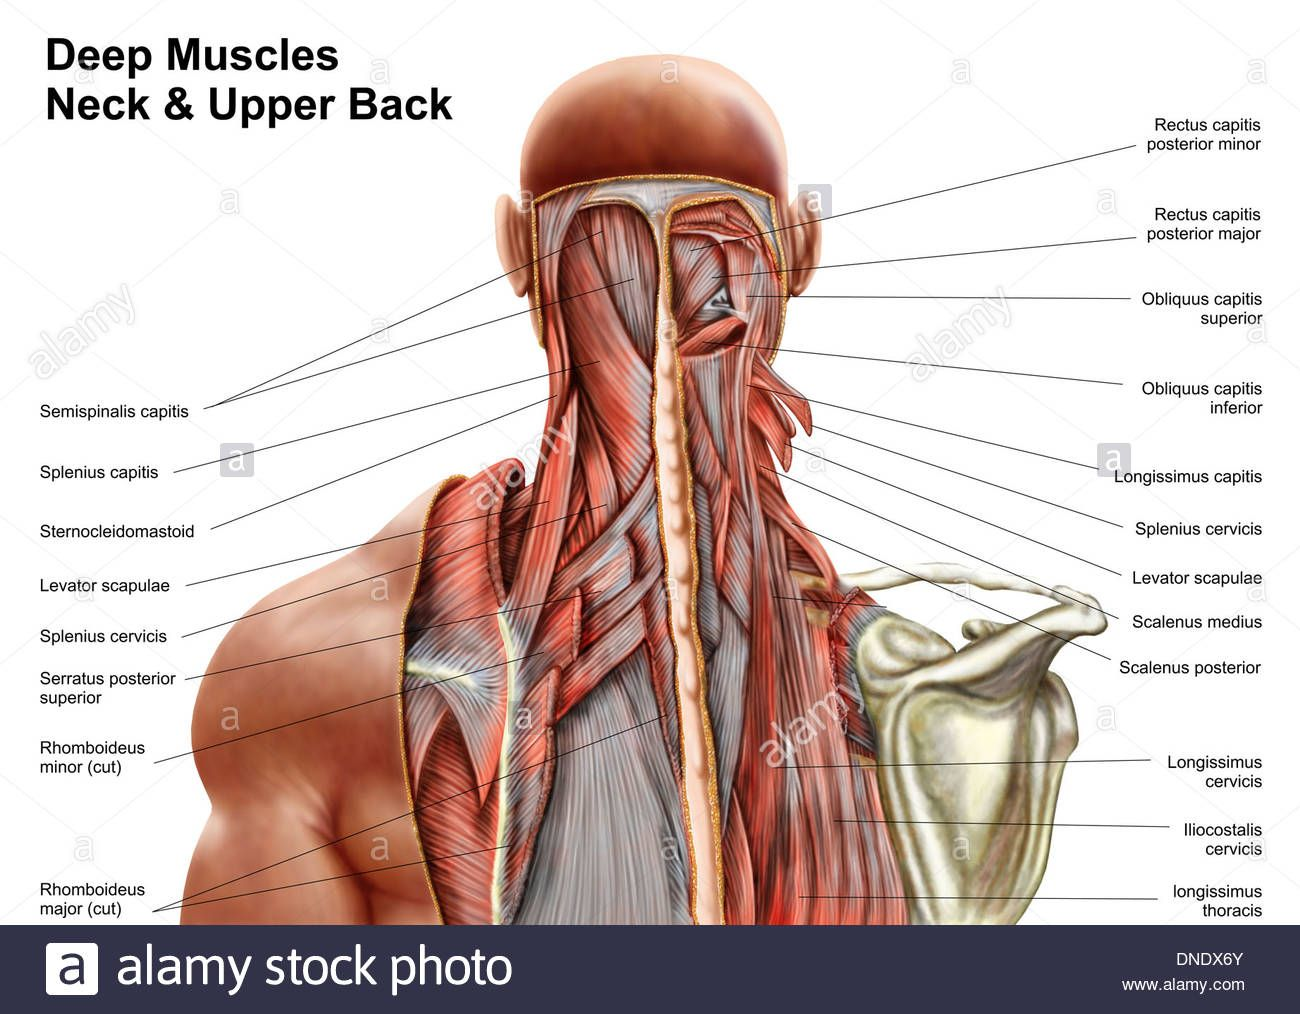 nerves in neck and shoulder diagram space suit labeled muscles anatomy human organs pinterest muscle back nerve